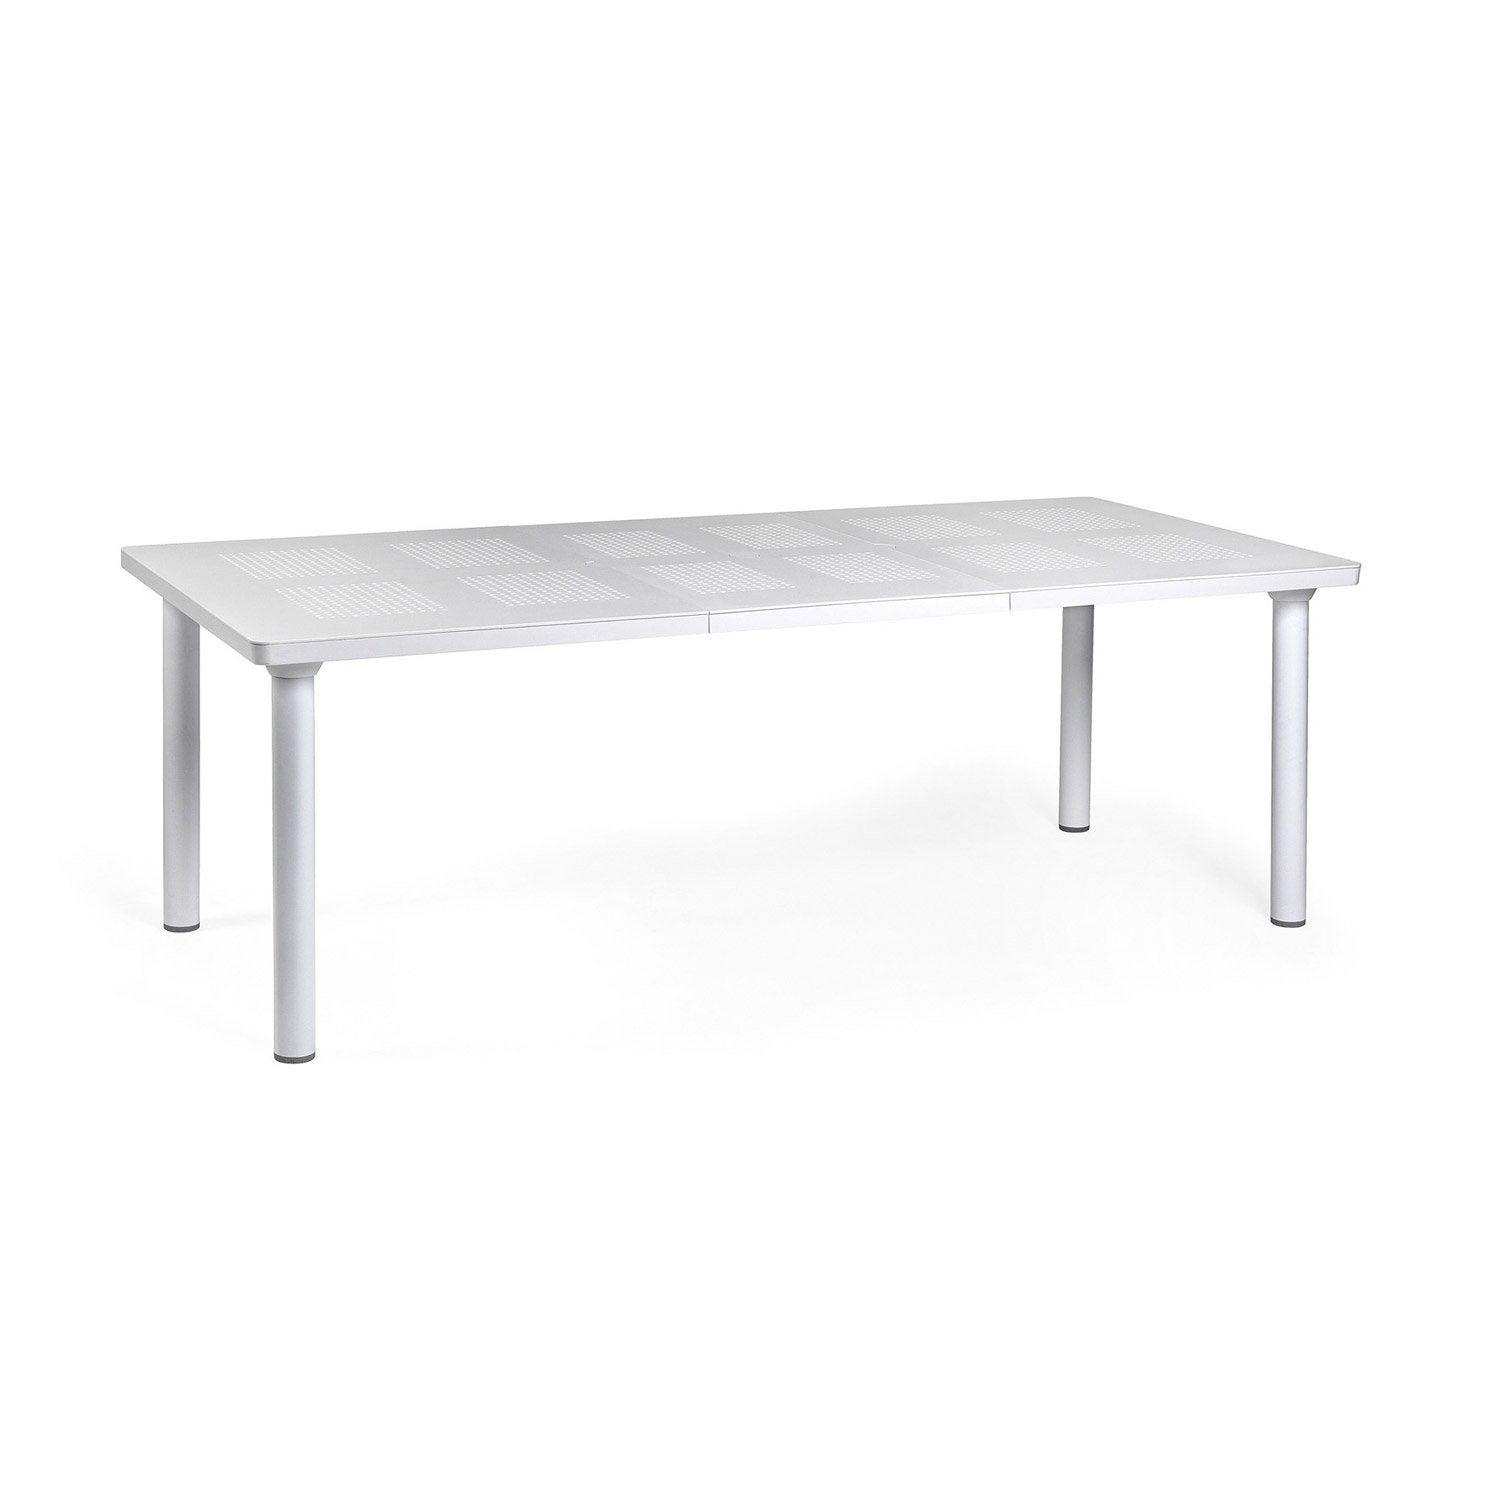 table de jardin libeccio rectangulaire blanc 8 personnes leroy merlin. Black Bedroom Furniture Sets. Home Design Ideas